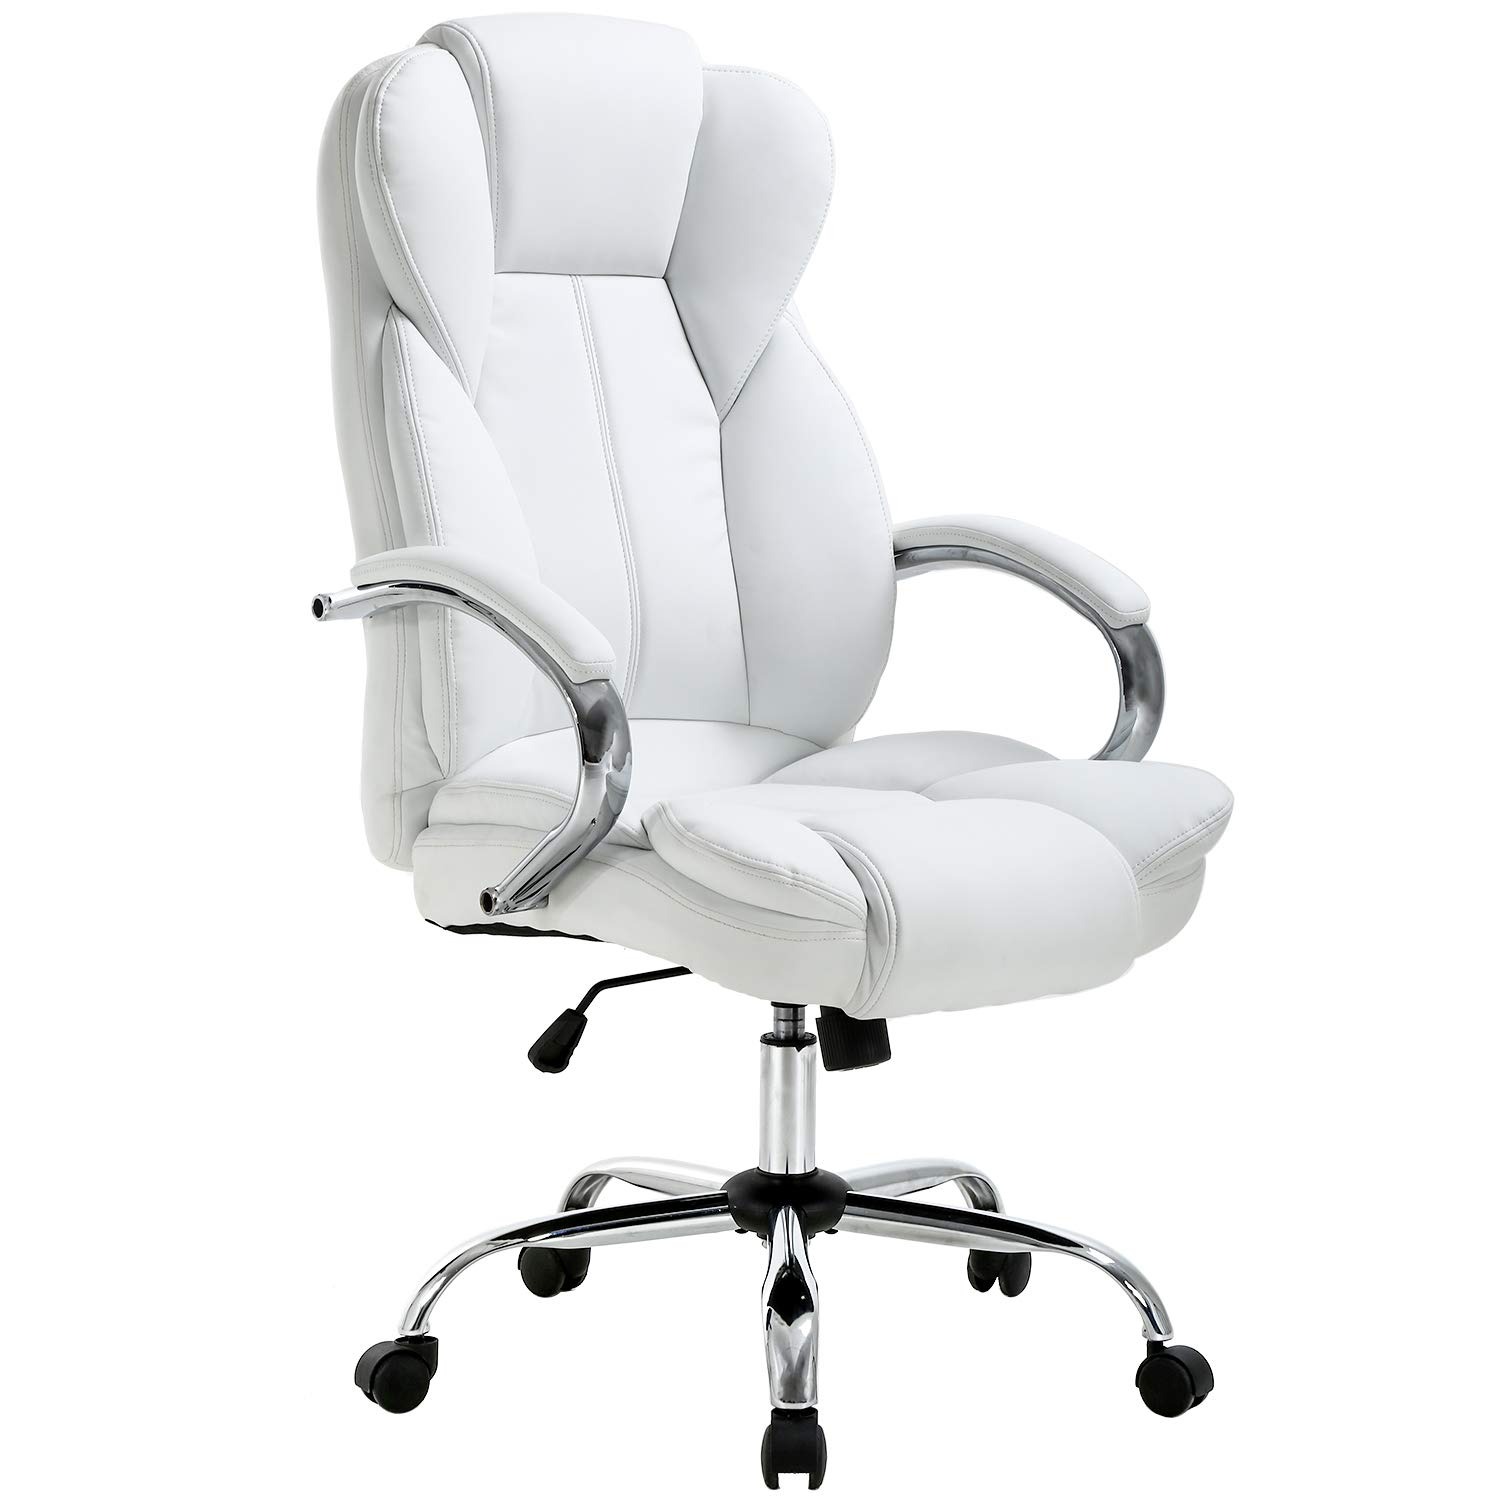 Ergonomic Office Chair Desk Chair PU Leather Computer Chair Executive Adjustable High Back PU Leather Task Rolling Swivel Chair with Lumbar Support for Women Men, White by BestOffice